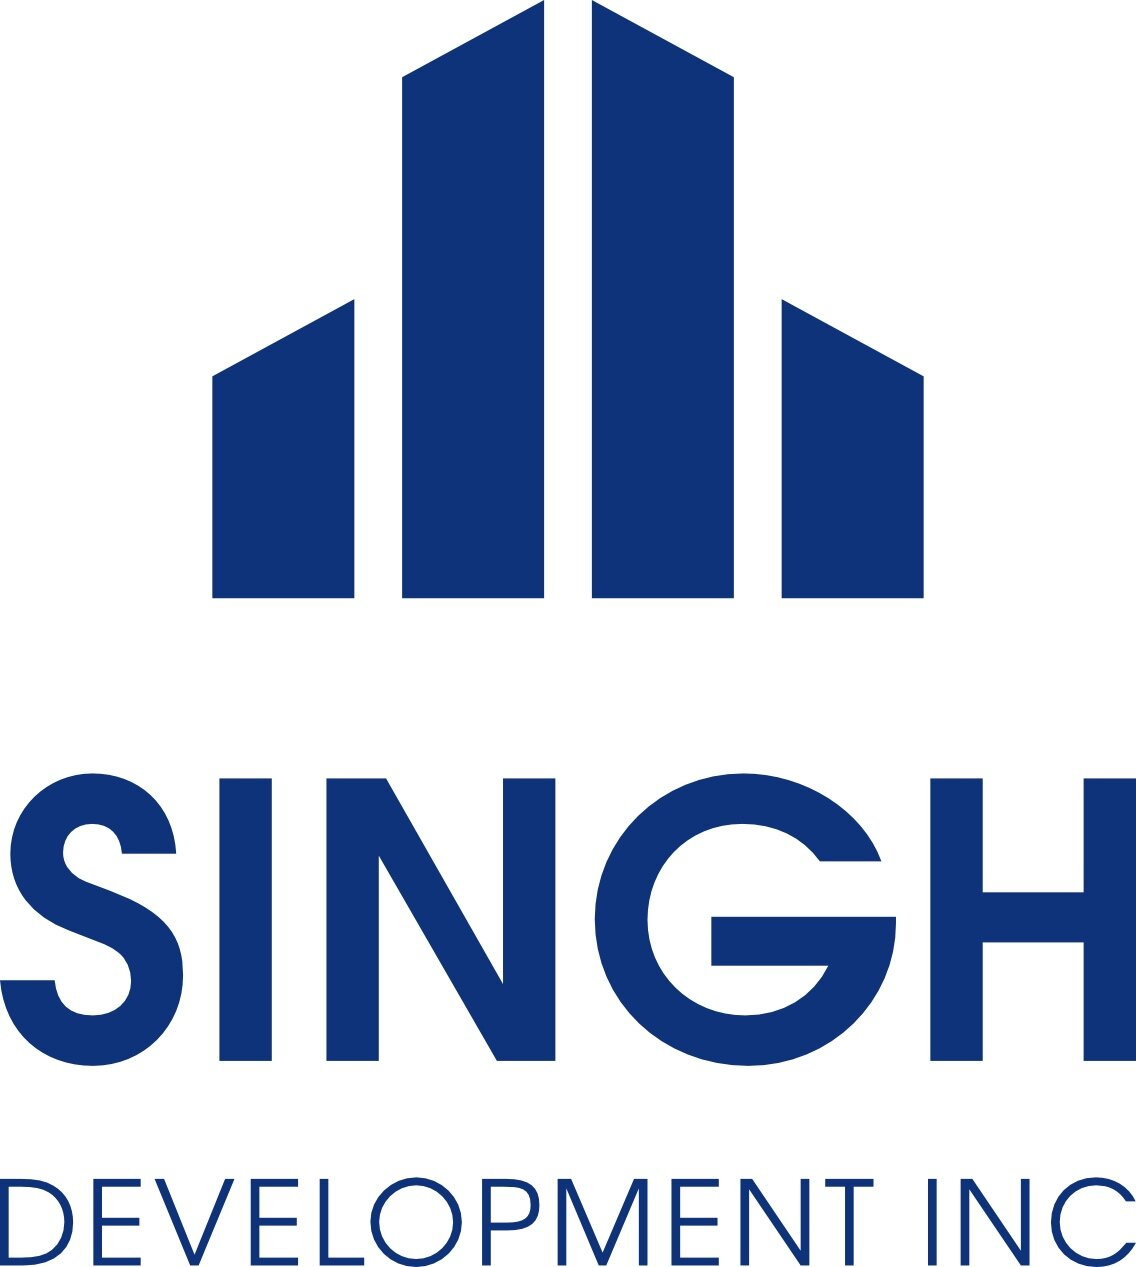 Singh Development Inc